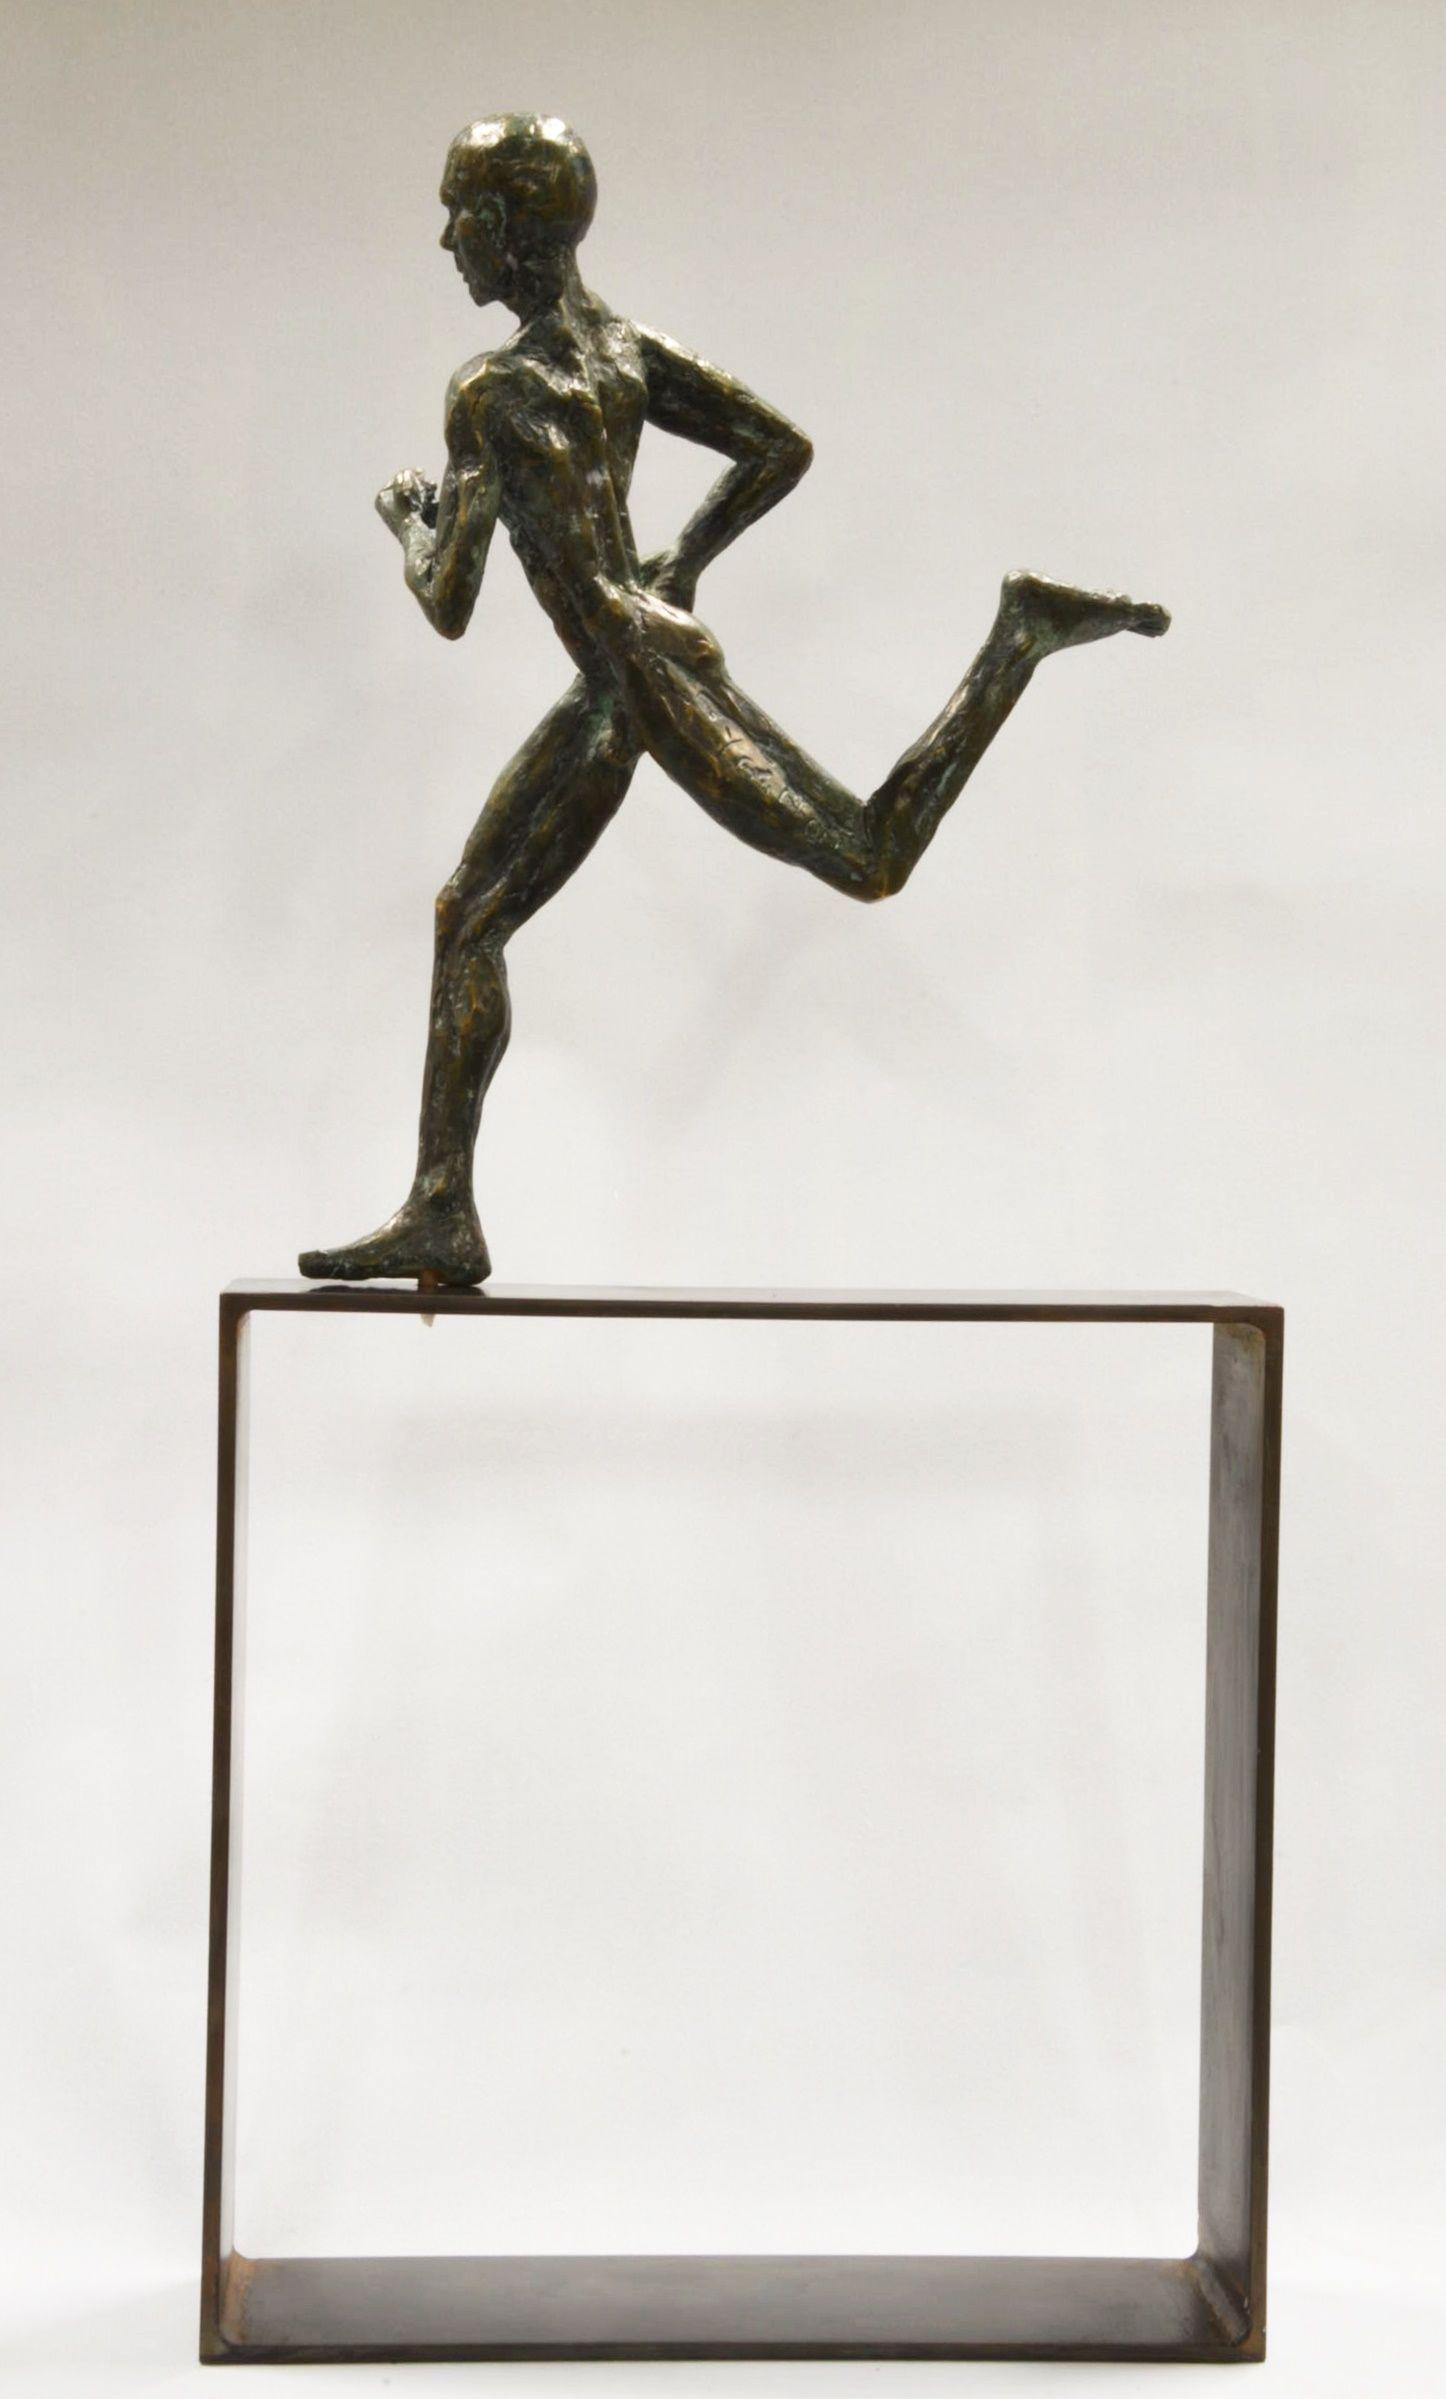 Coureur marathon,Yann Guillon,Sculpture, detail 1